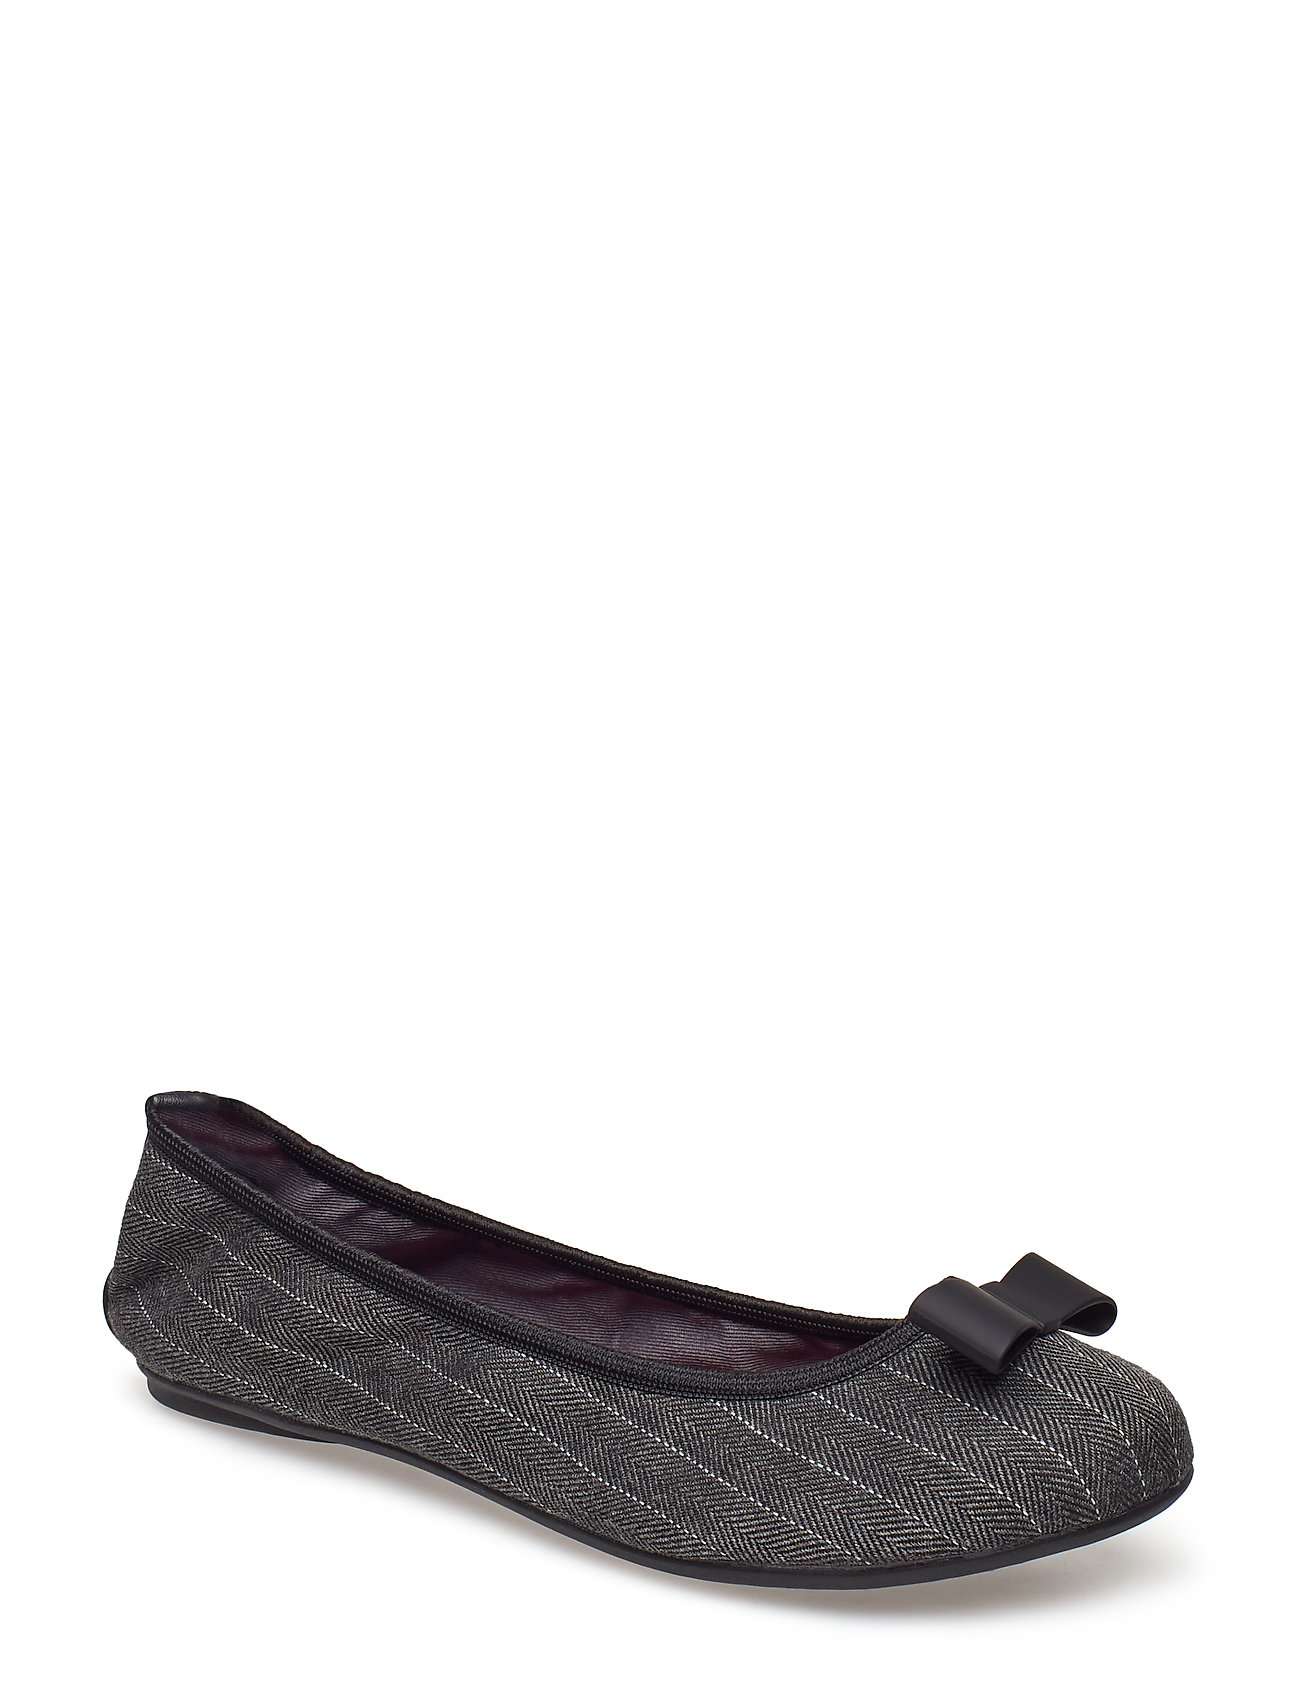 Butterfly Twists CHLOE - SLATE PINSTRIPE